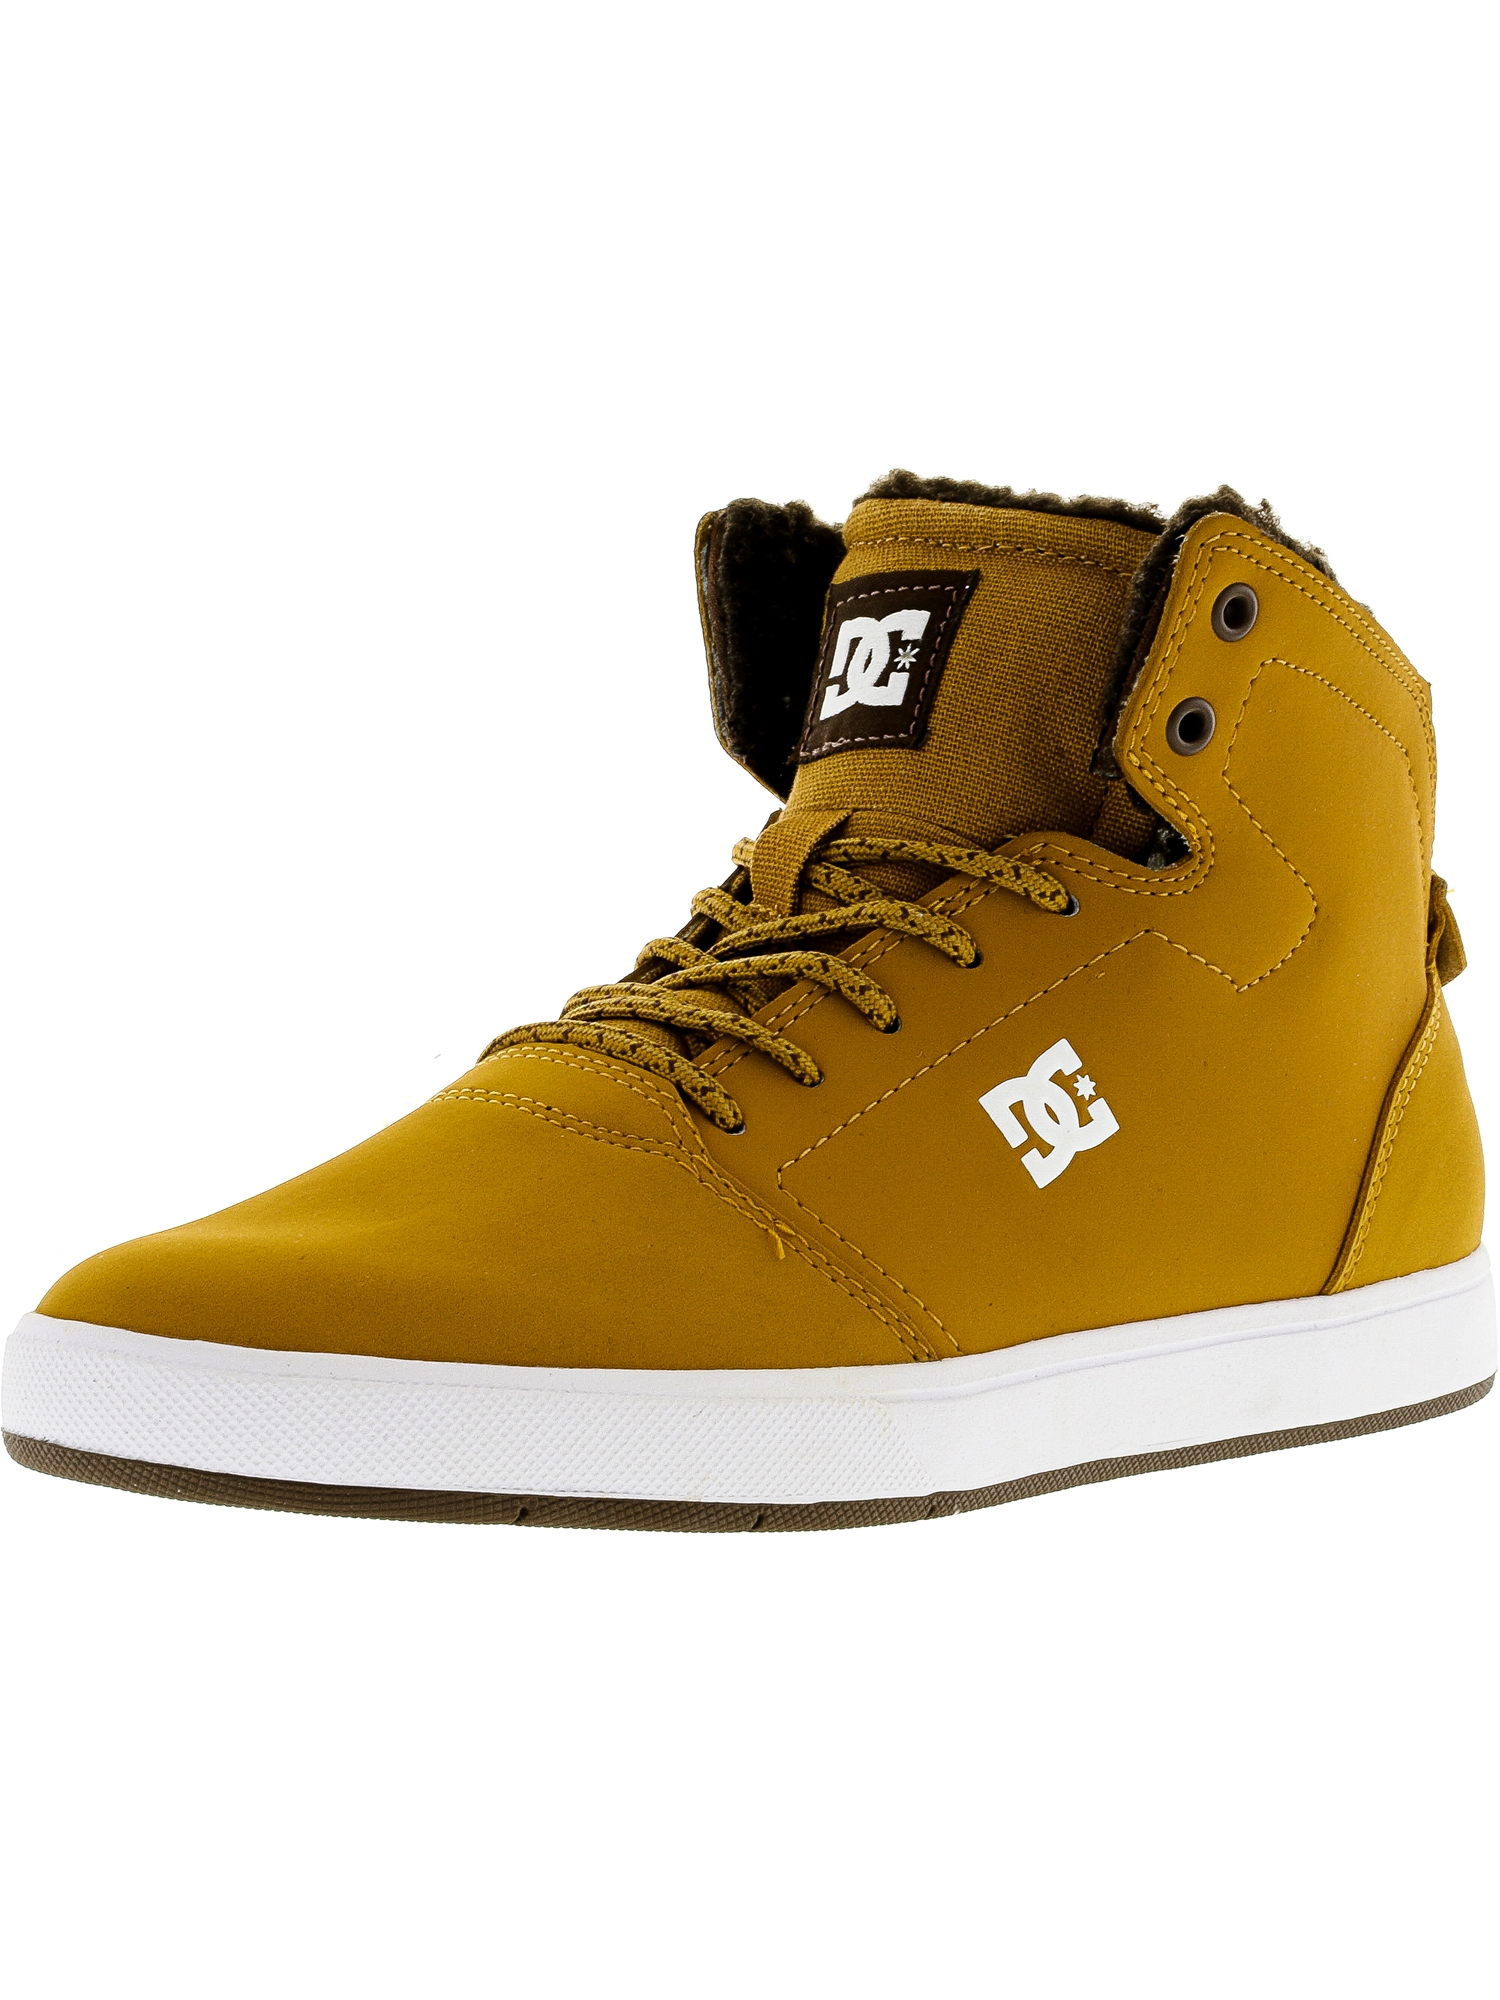 Dc Men's Crisis High Wnt Wheat Ankle-High Suede Fashion Sneaker - 7M